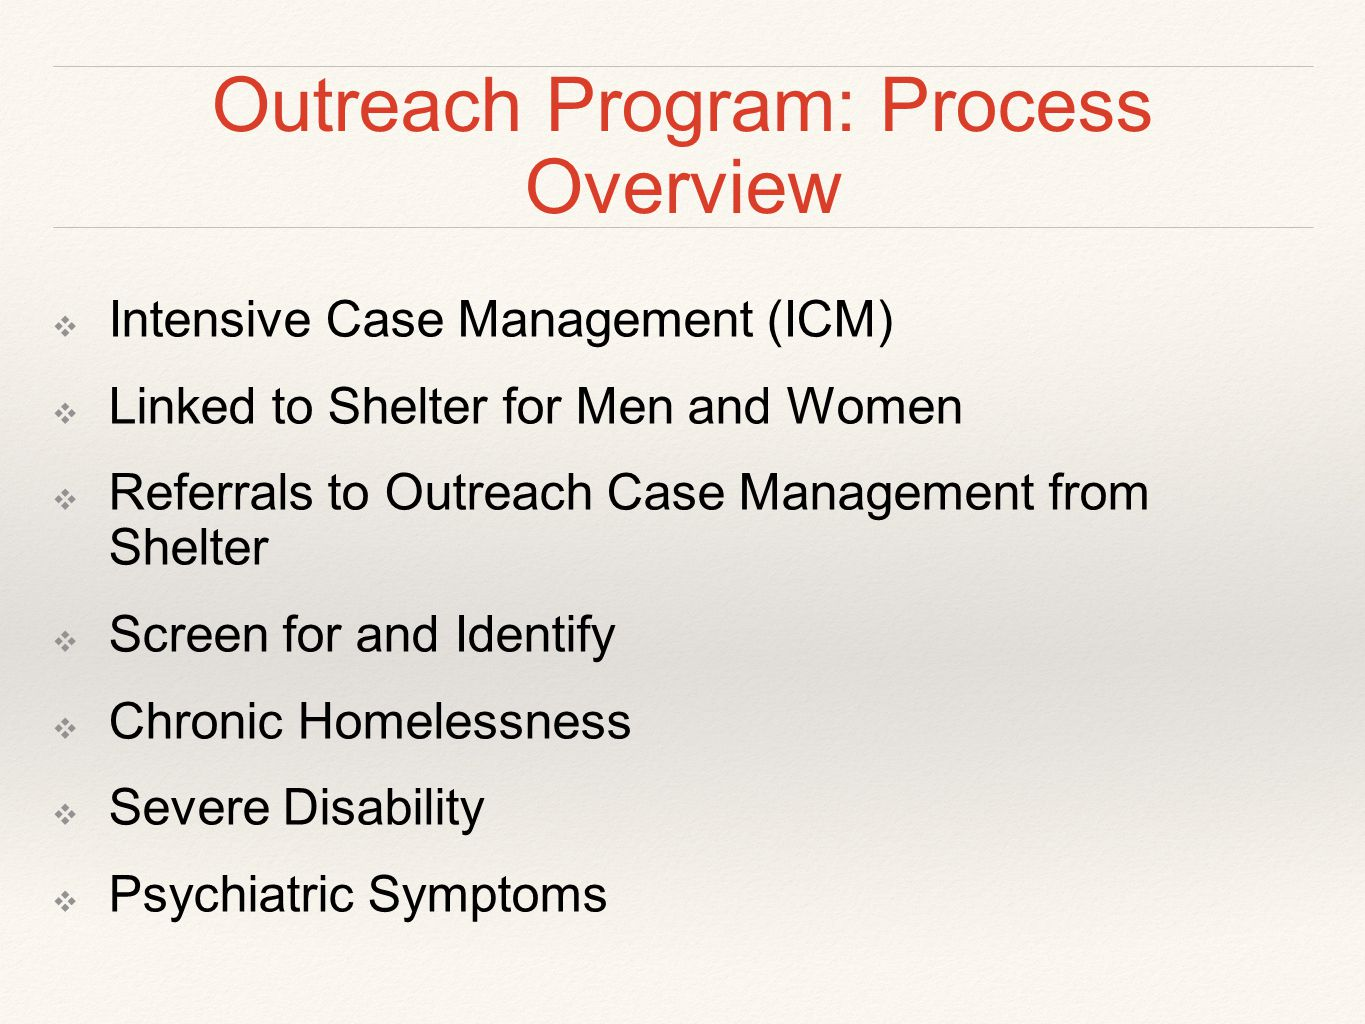 Outreach Program: Process Overview ❖ Intensive Case Management (ICM) ❖ Linked to Shelter for Men and Women ❖ Referrals to Outreach Case Management from Shelter ❖ Screen for and Identify ❖ Chronic Homelessness ❖ Severe Disability ❖ Psychiatric Symptoms